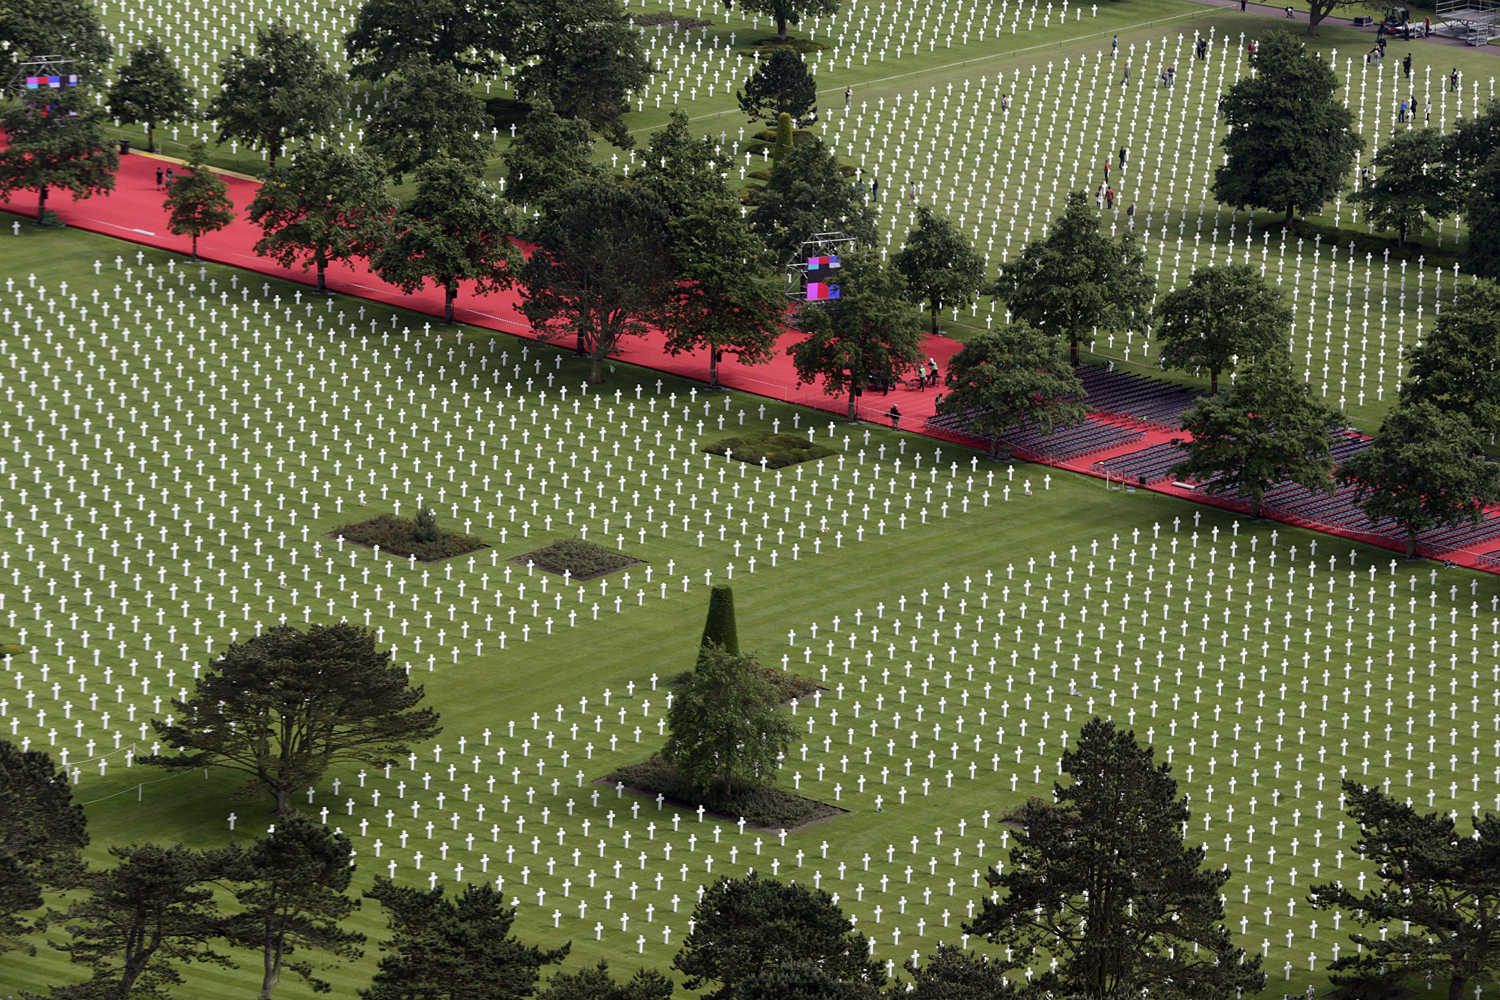 June 3, 2014. An aerial view of the American cemetary in Colleville-sur-Mer, near Omaha beach, on  as preparations were being made for the upcoming D-Day commemoration events on June 6.